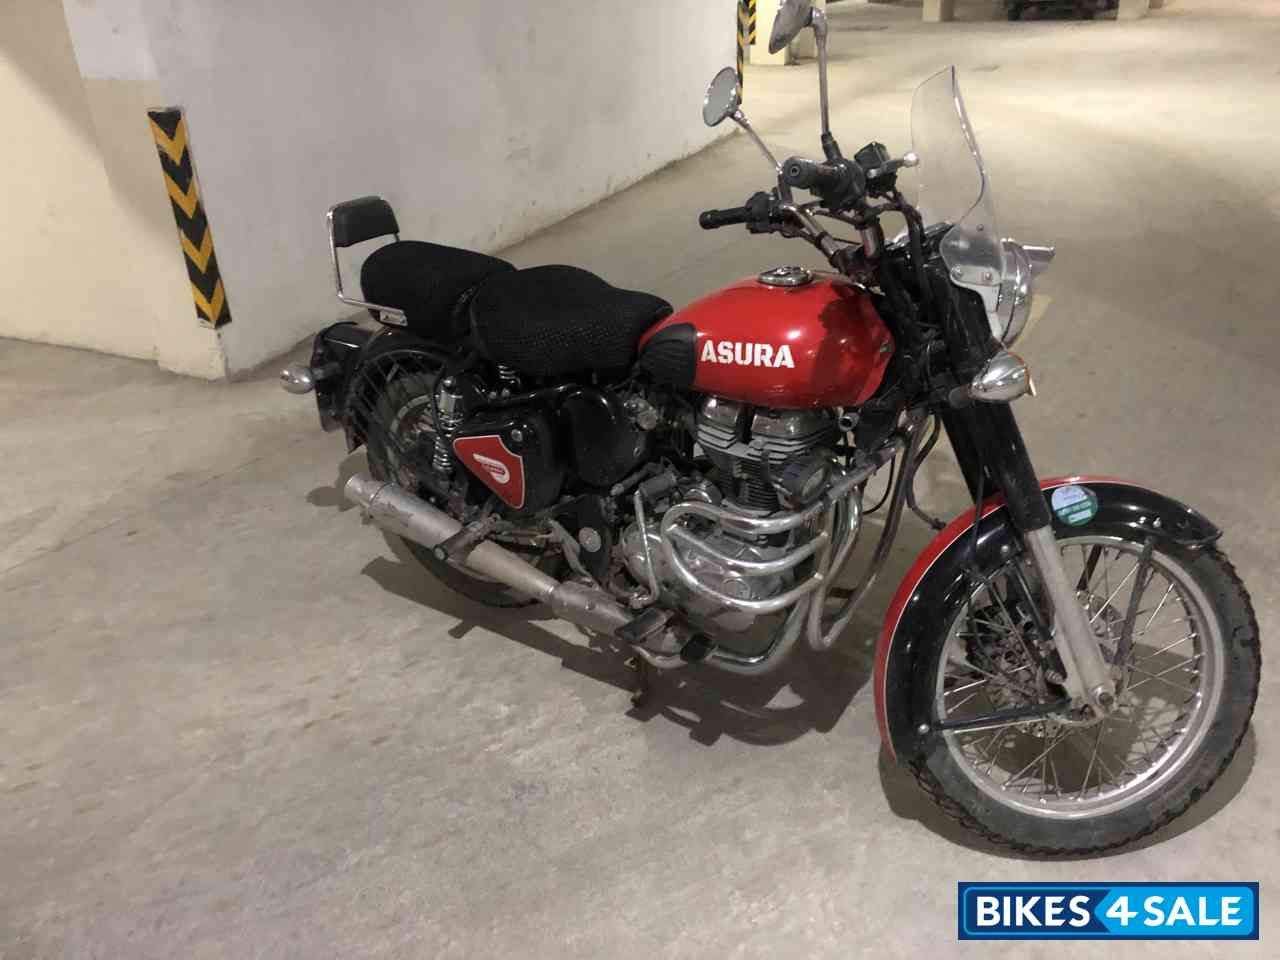 Used 2013 model Royal Enfield Classic 500 for sale in